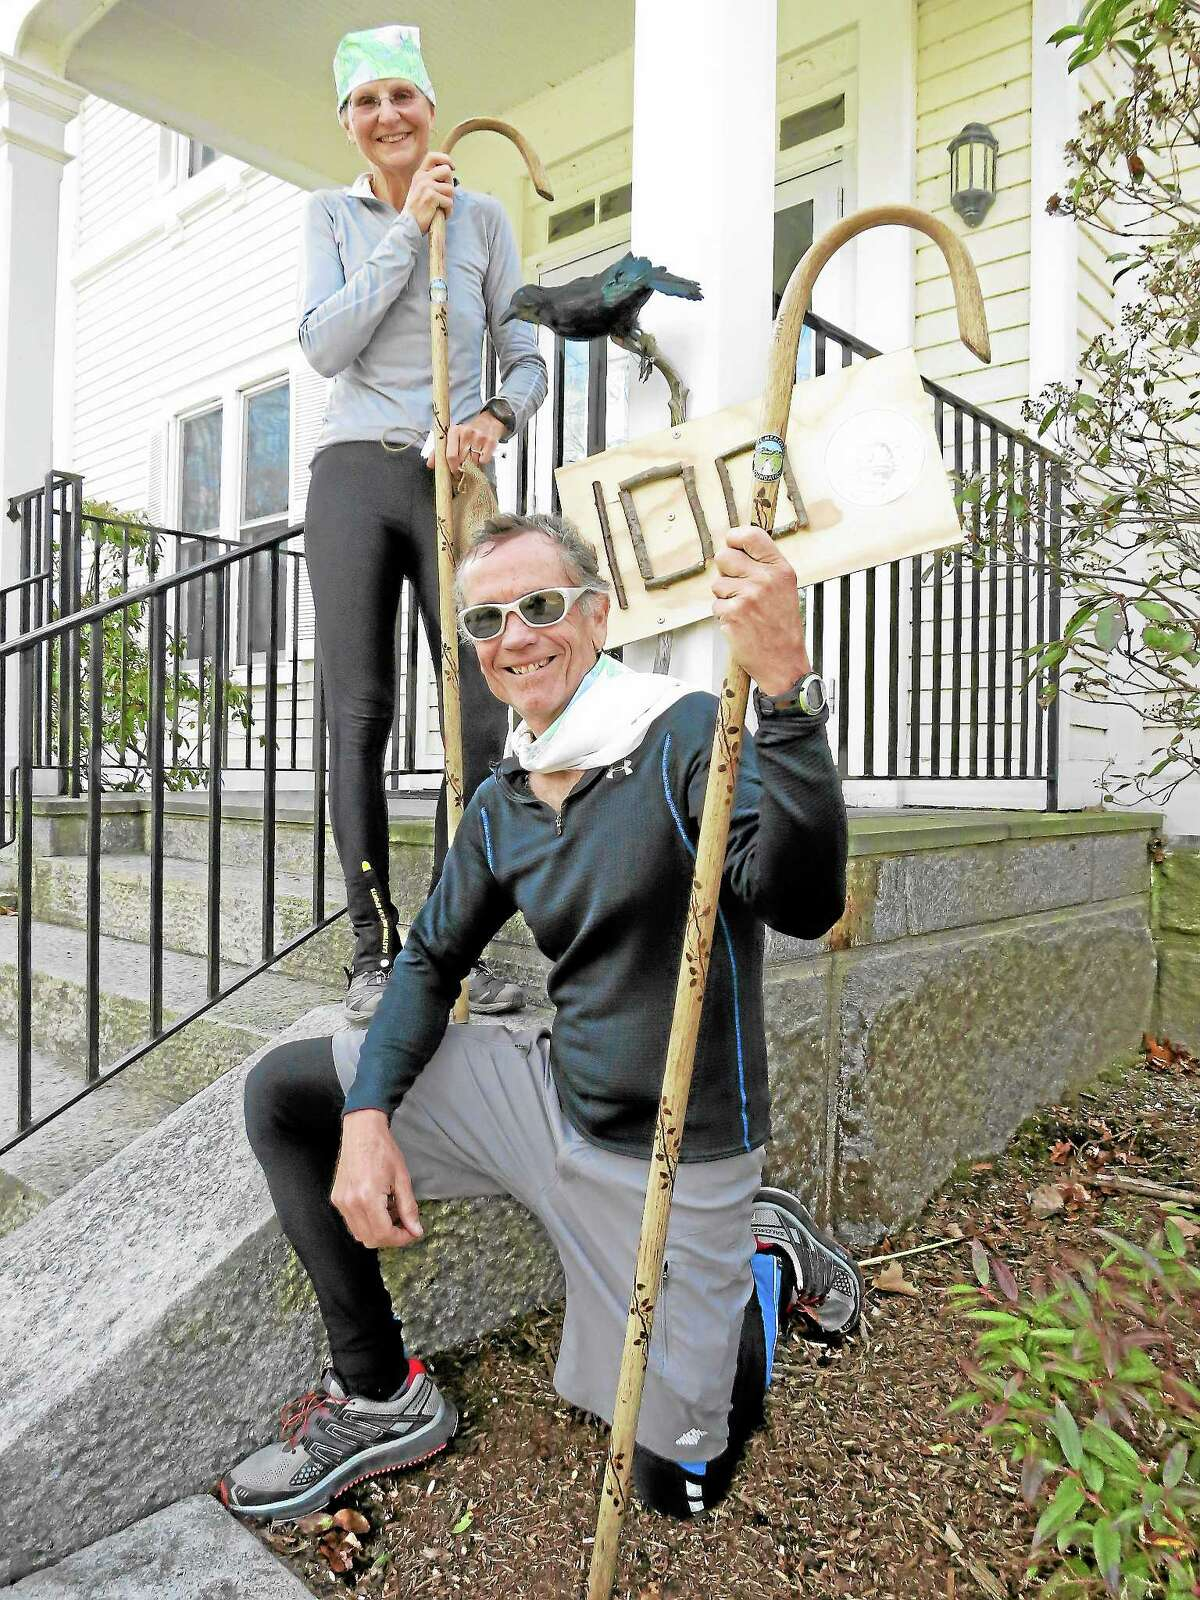 Contributed PhotoArt and Carol Morenz of Thomaston, CT finished the race a full 12 minutes before the closed competitor and received walking sticks as a prize.